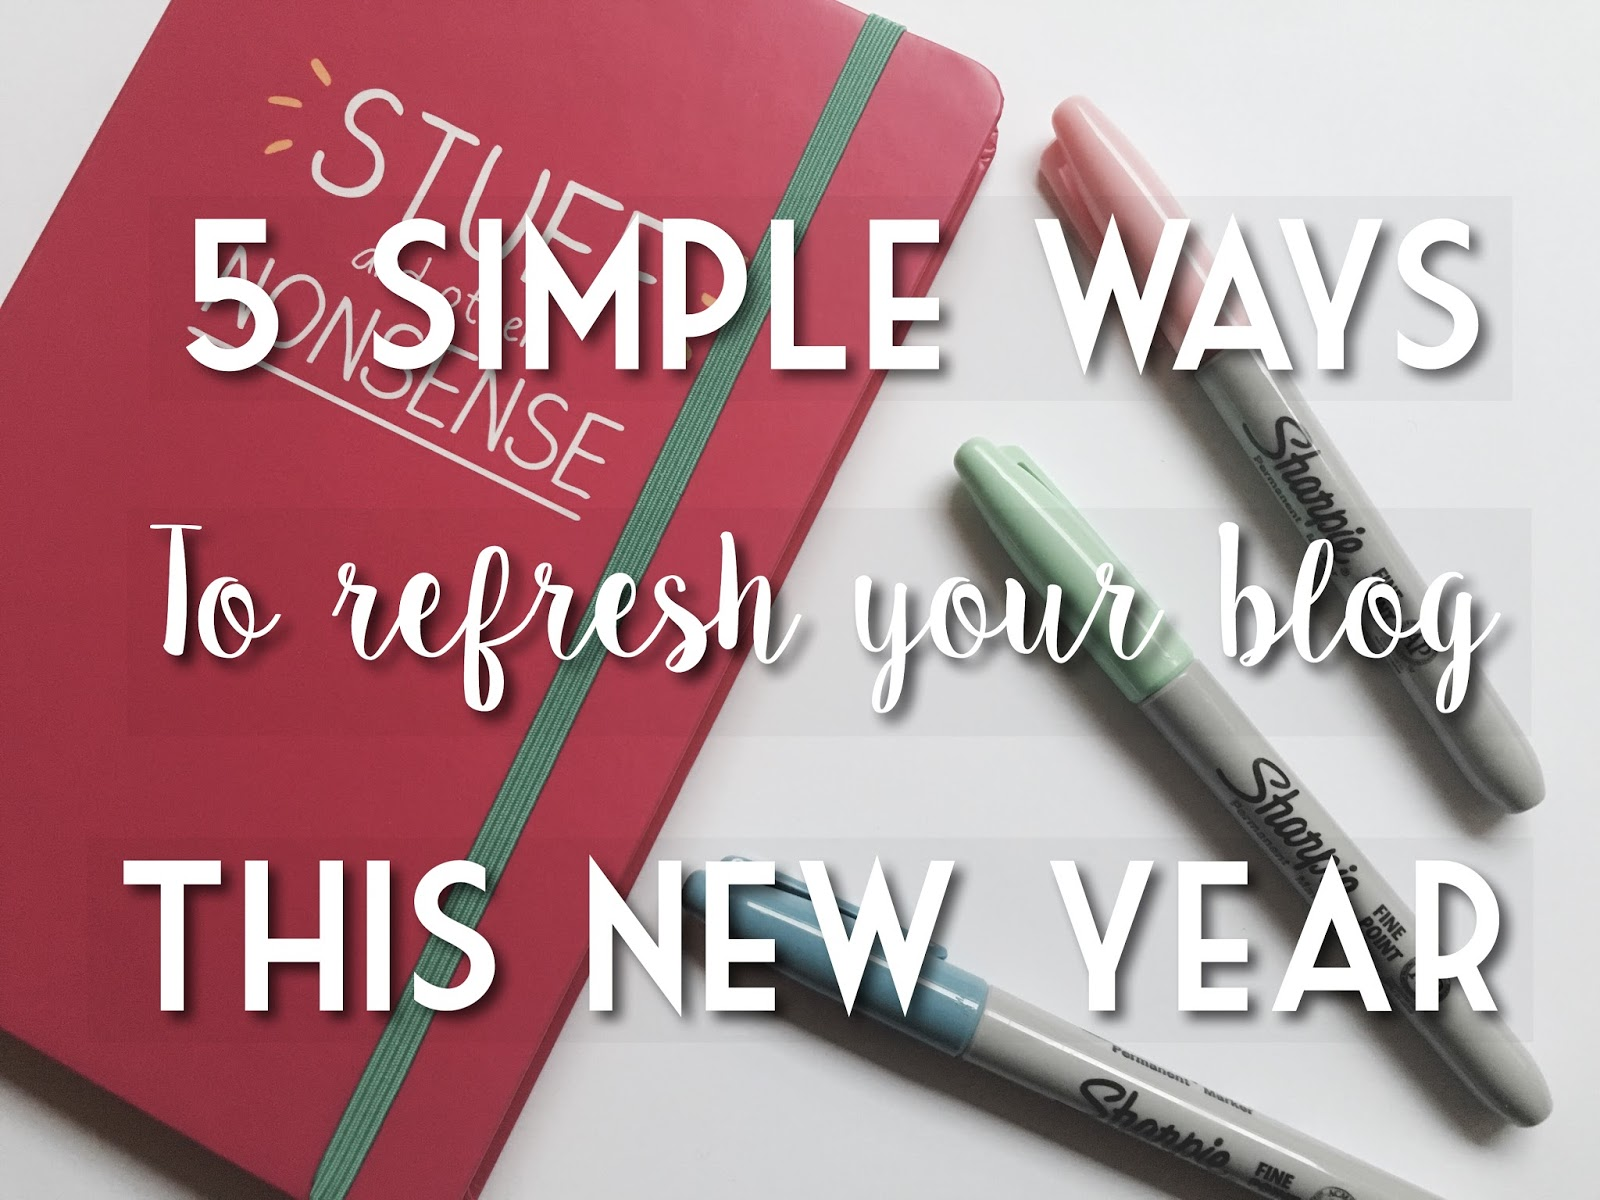 5 simple ways to refresh your blog this new year